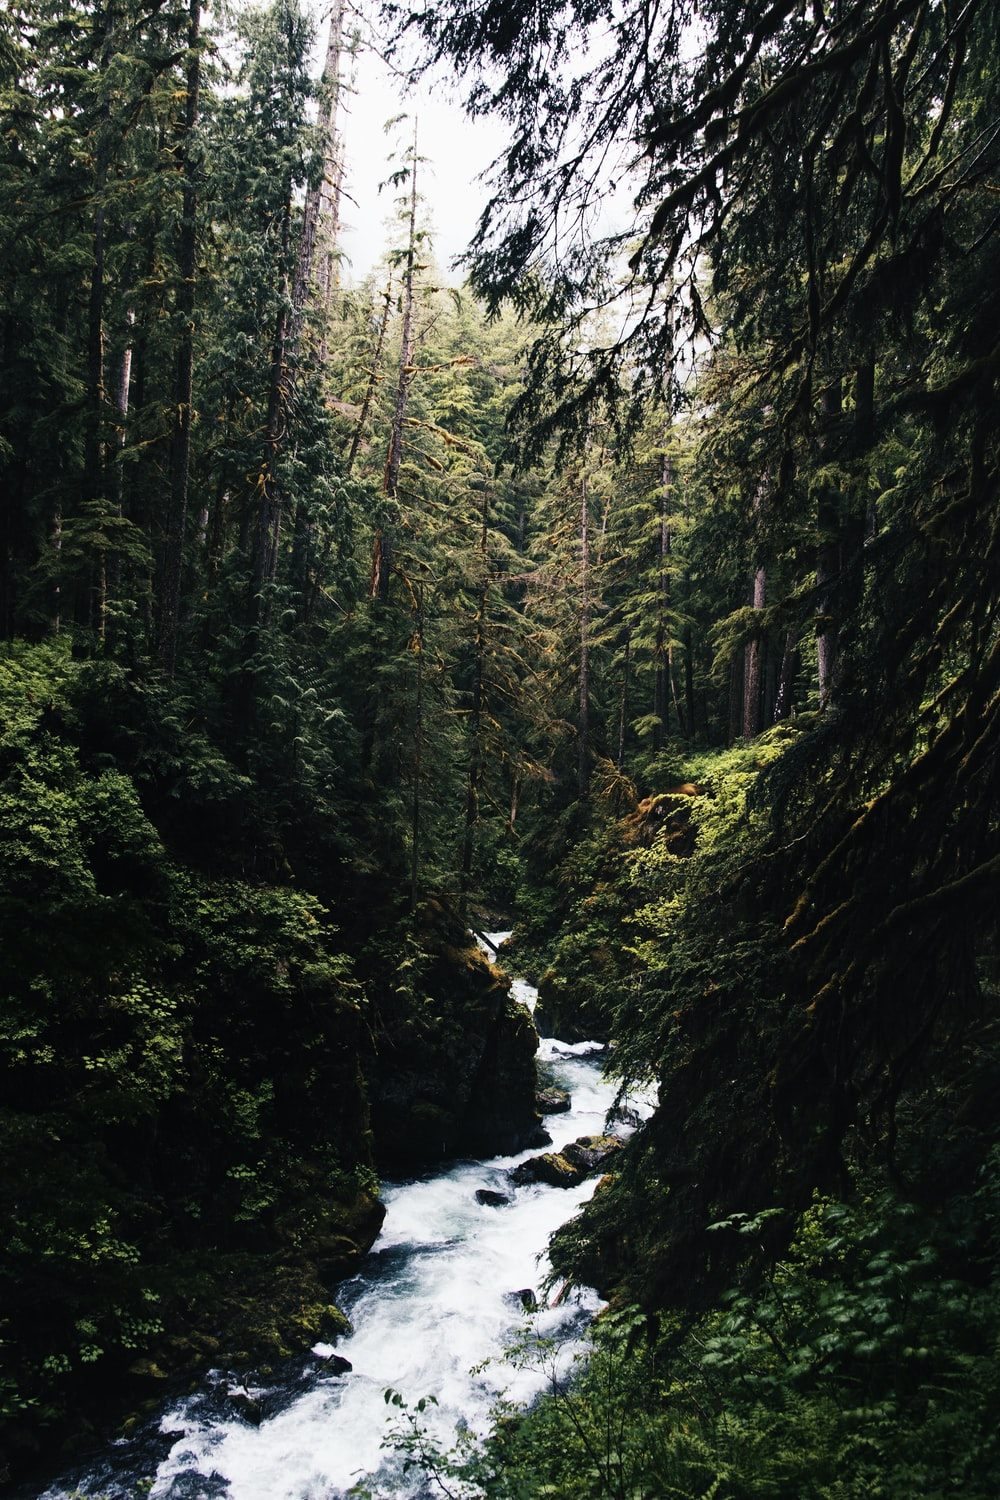 water stream in the middle of forest